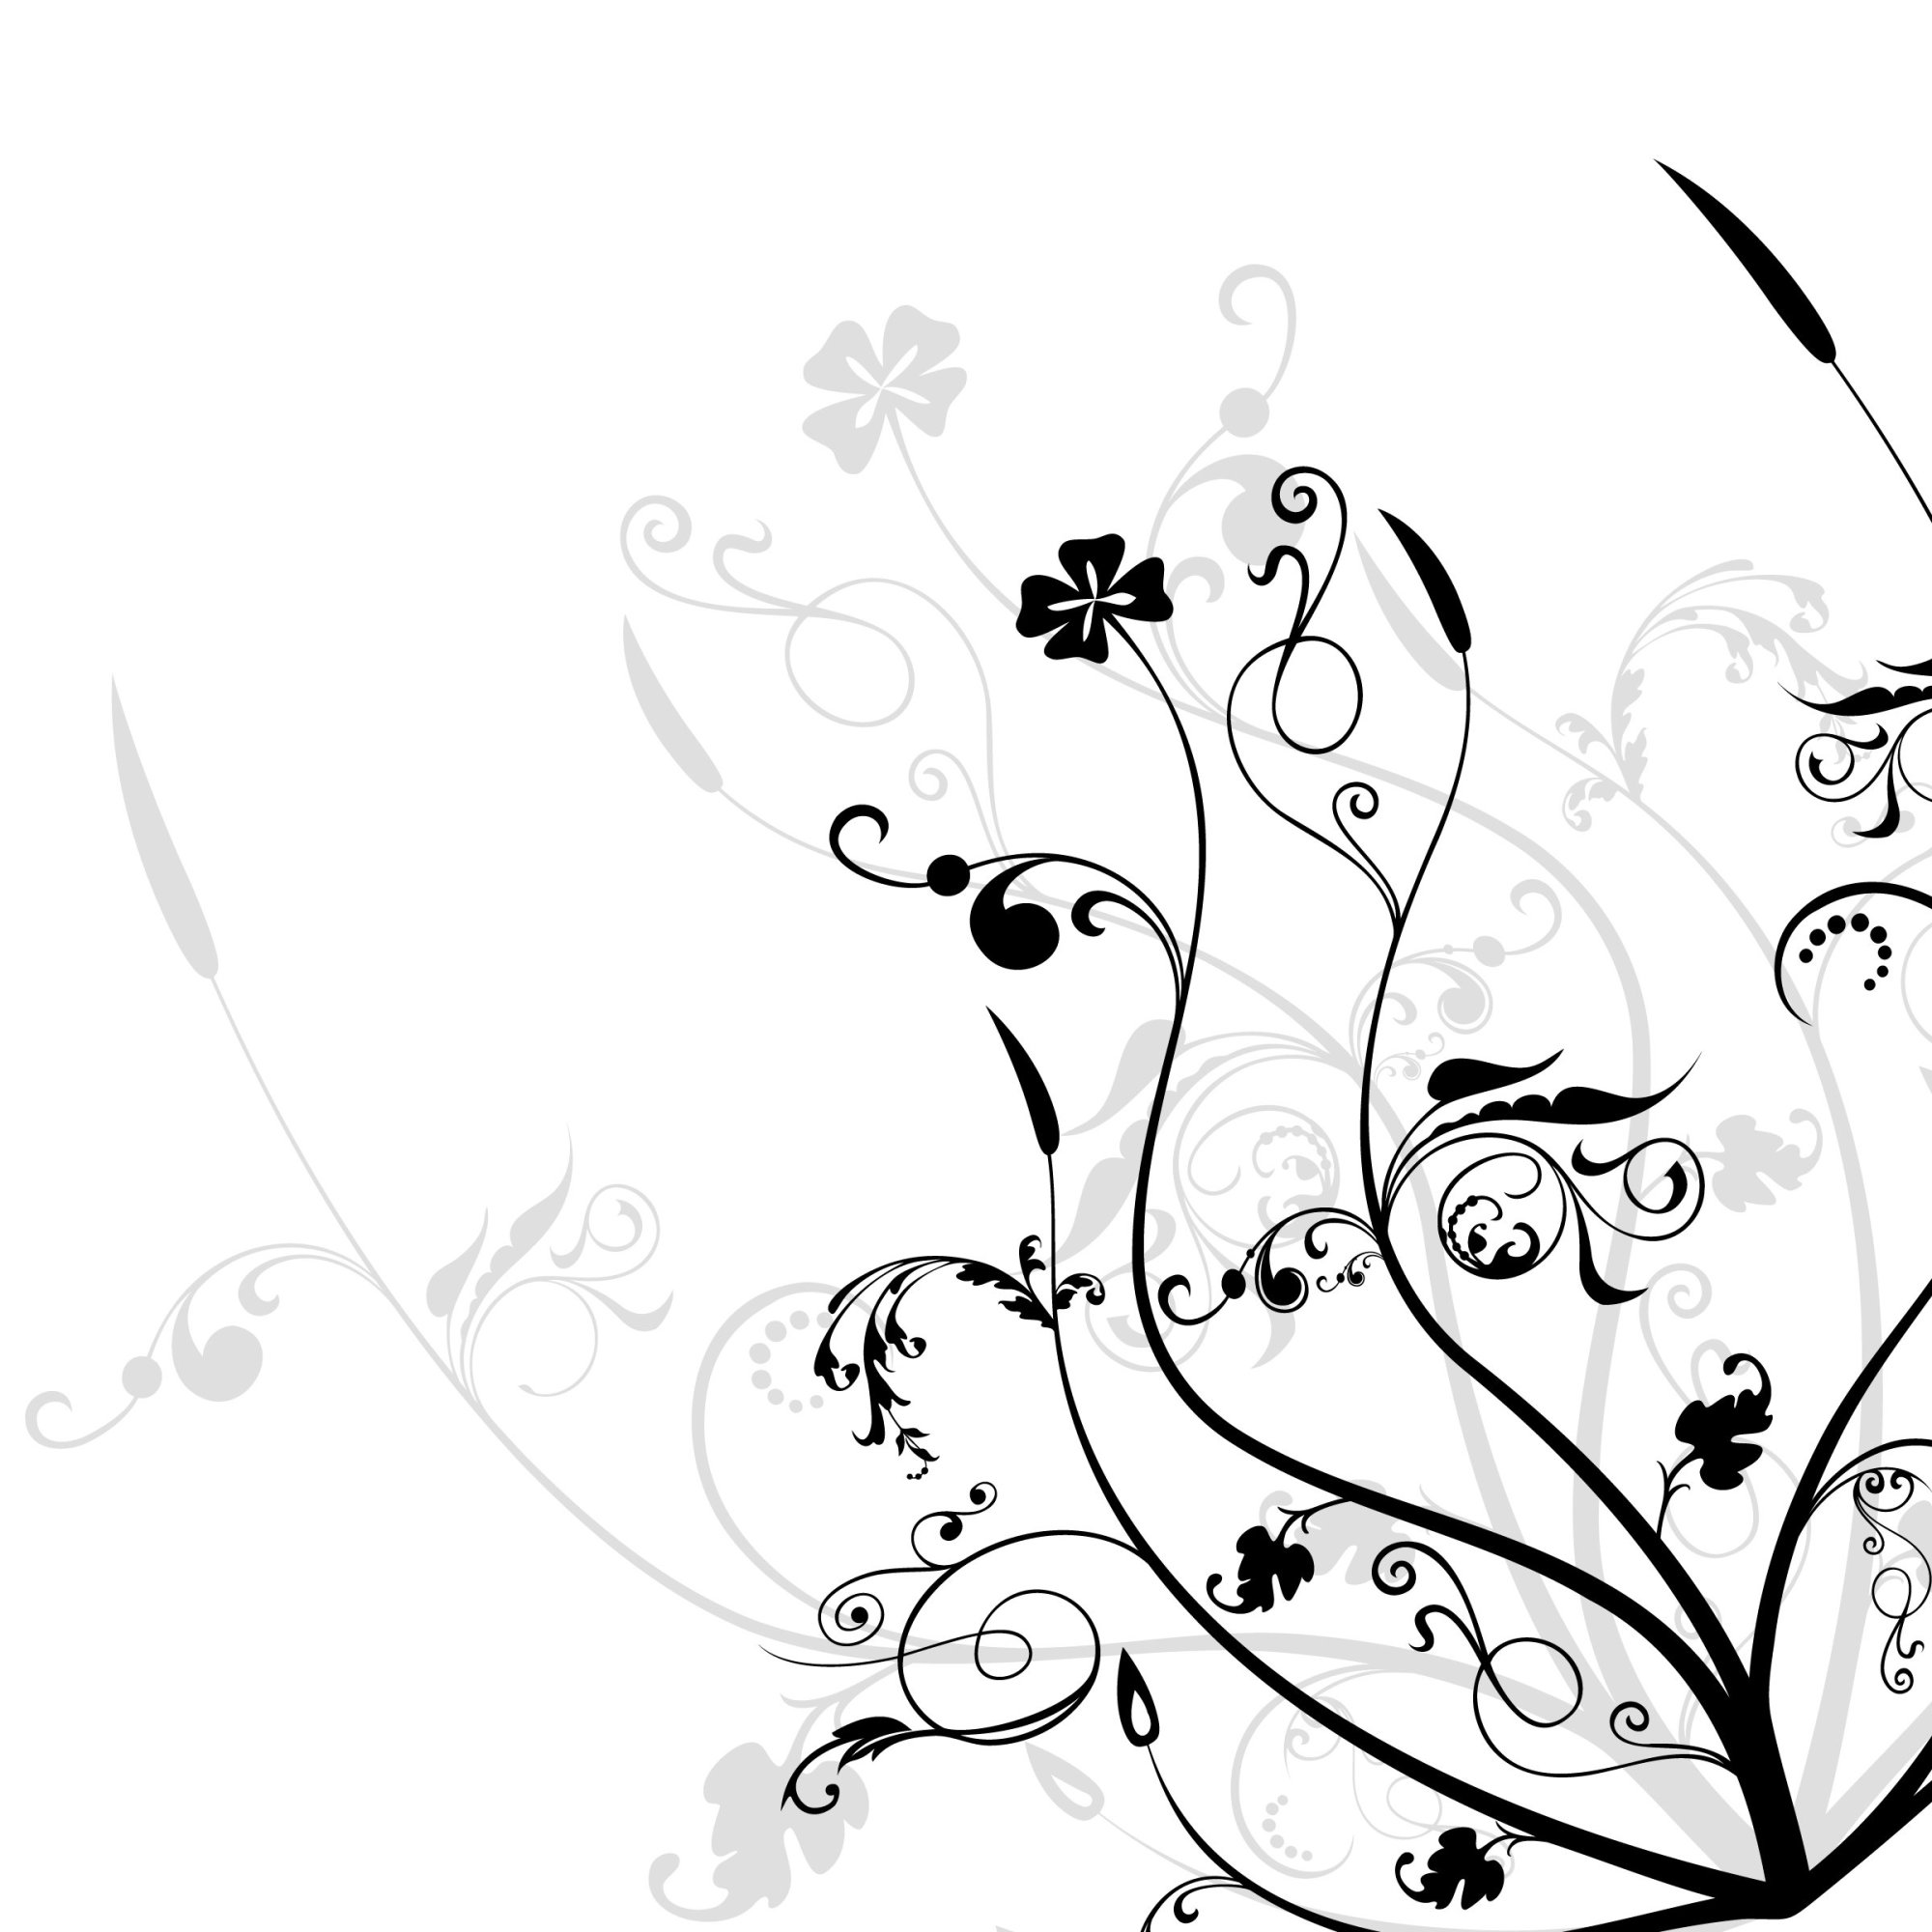 hight resolution of flower black and white design images pictures becuo